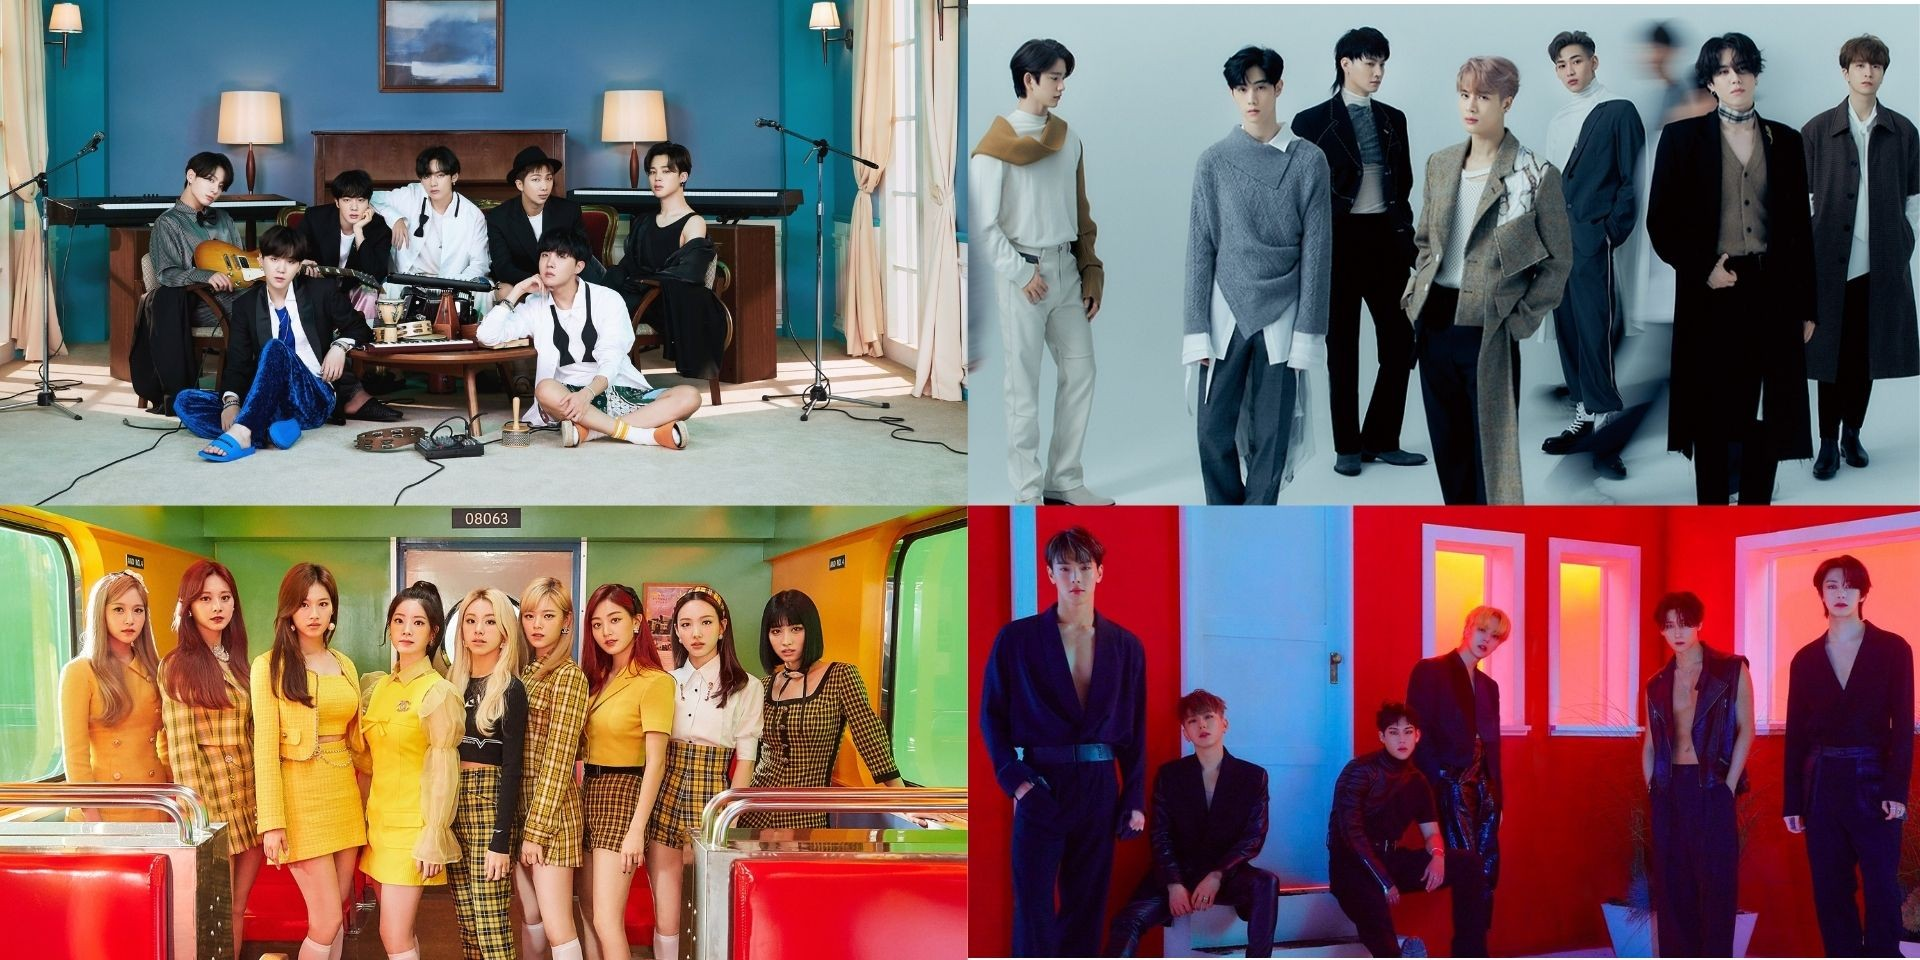 Bts Got7 Monsta X Twice And More To Perform At The Mnet Asian